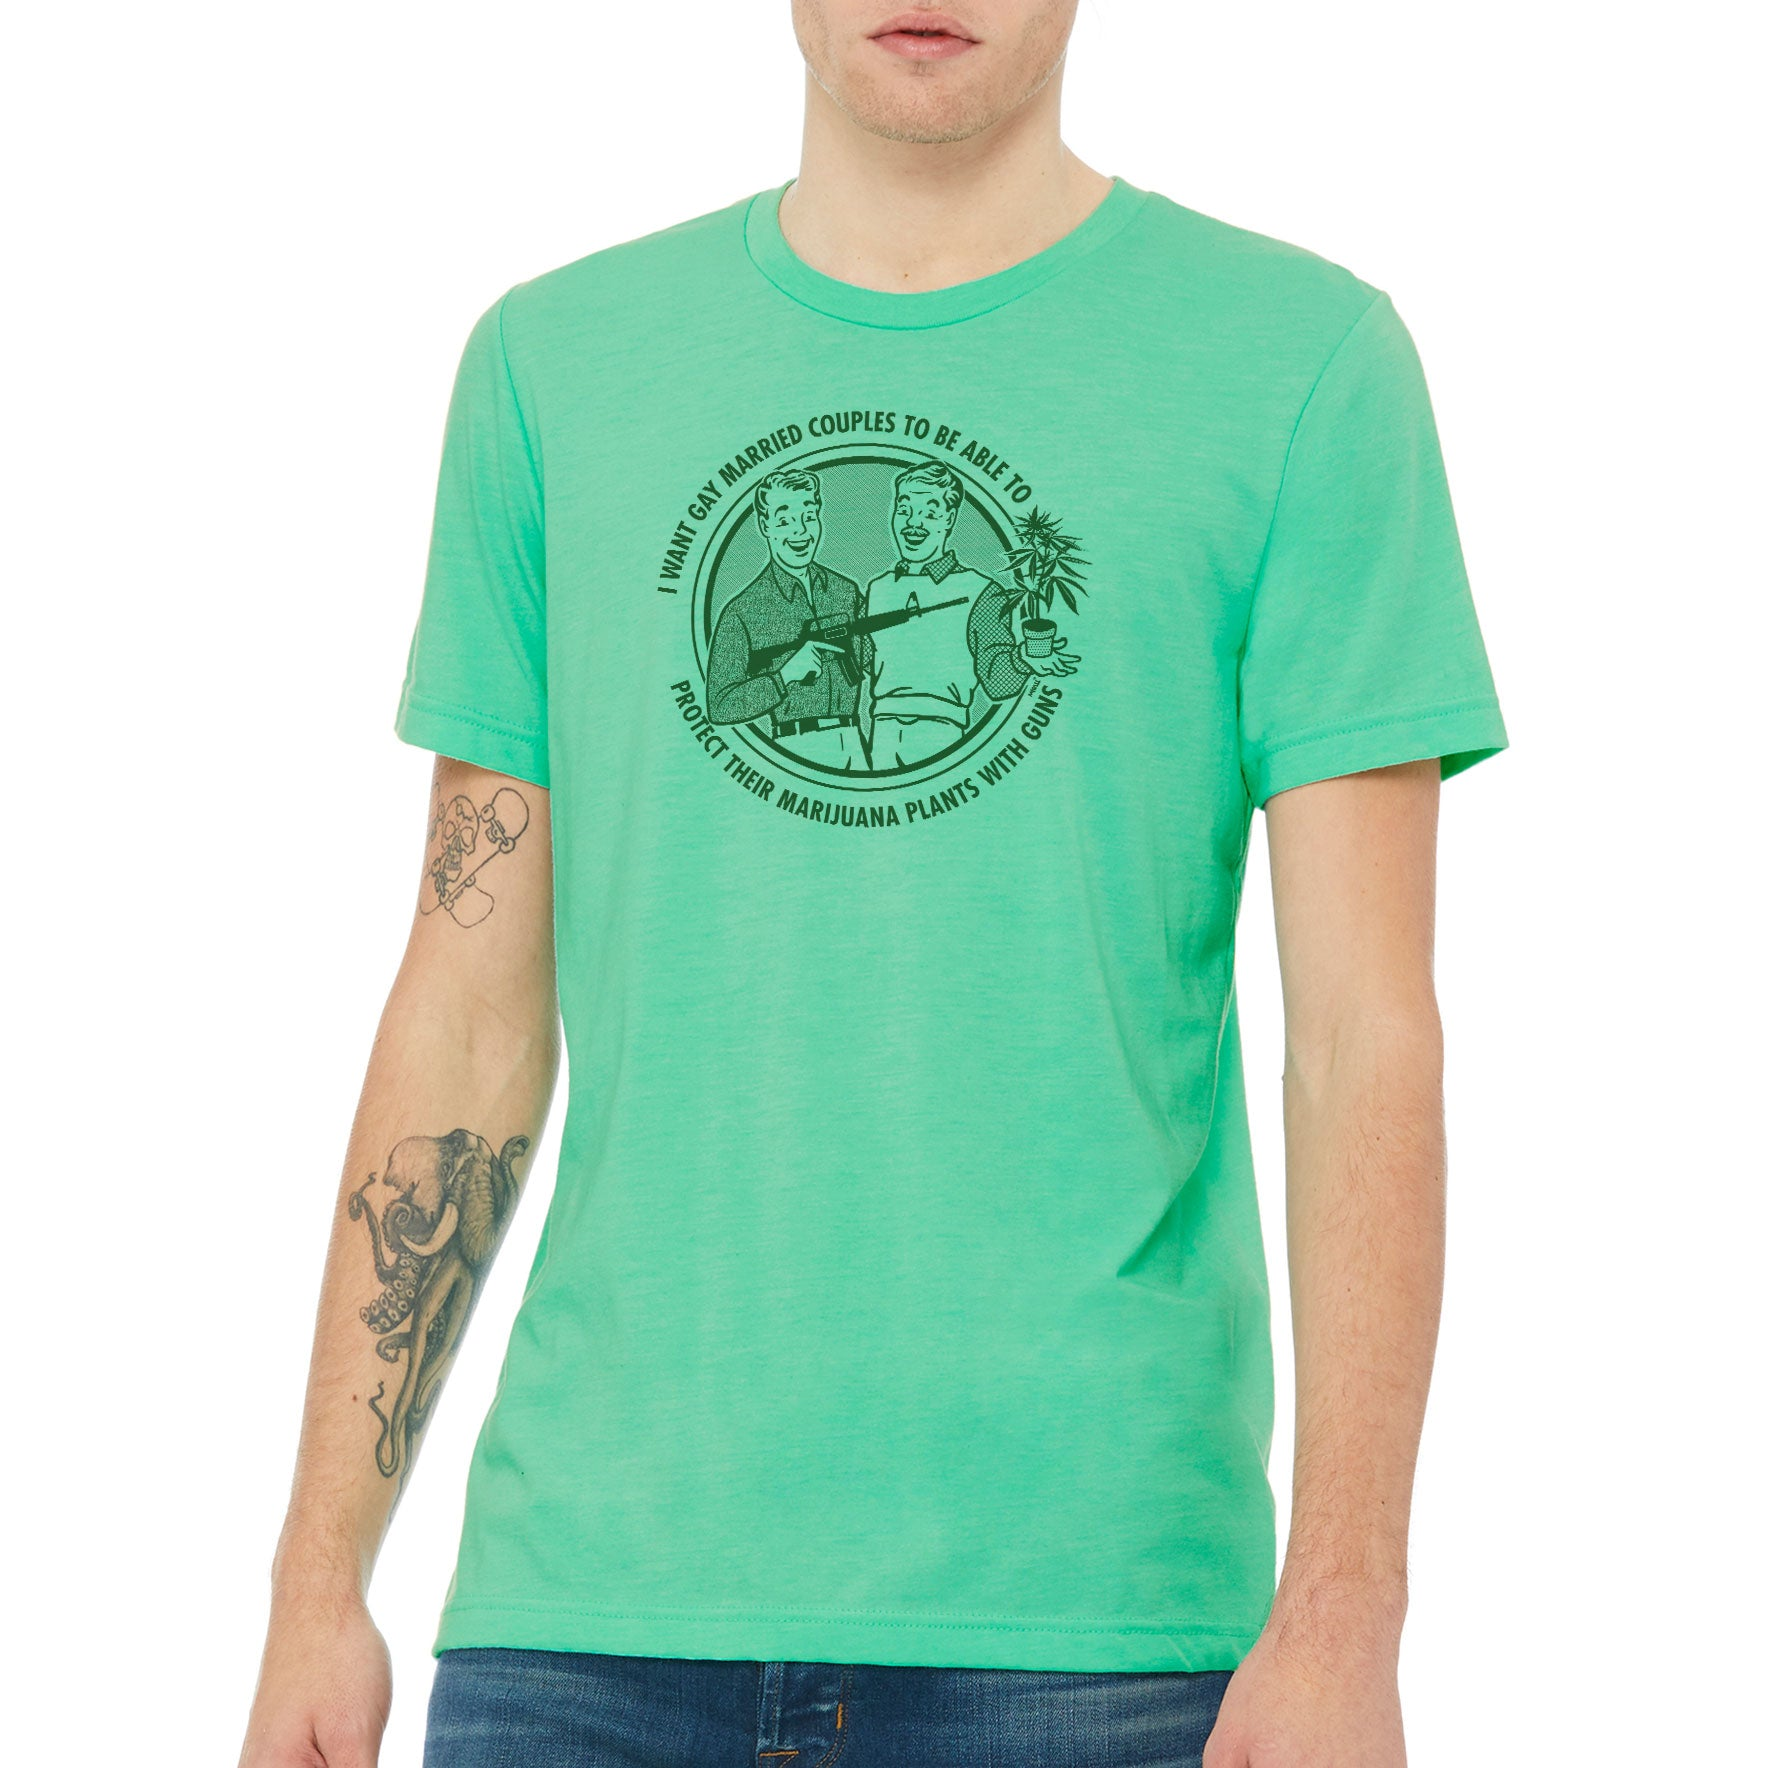 b036ef194 ... I Want Gay Married Couples To Protect Their Marijuana Plants With Guns  Heather Mint Shirt ...